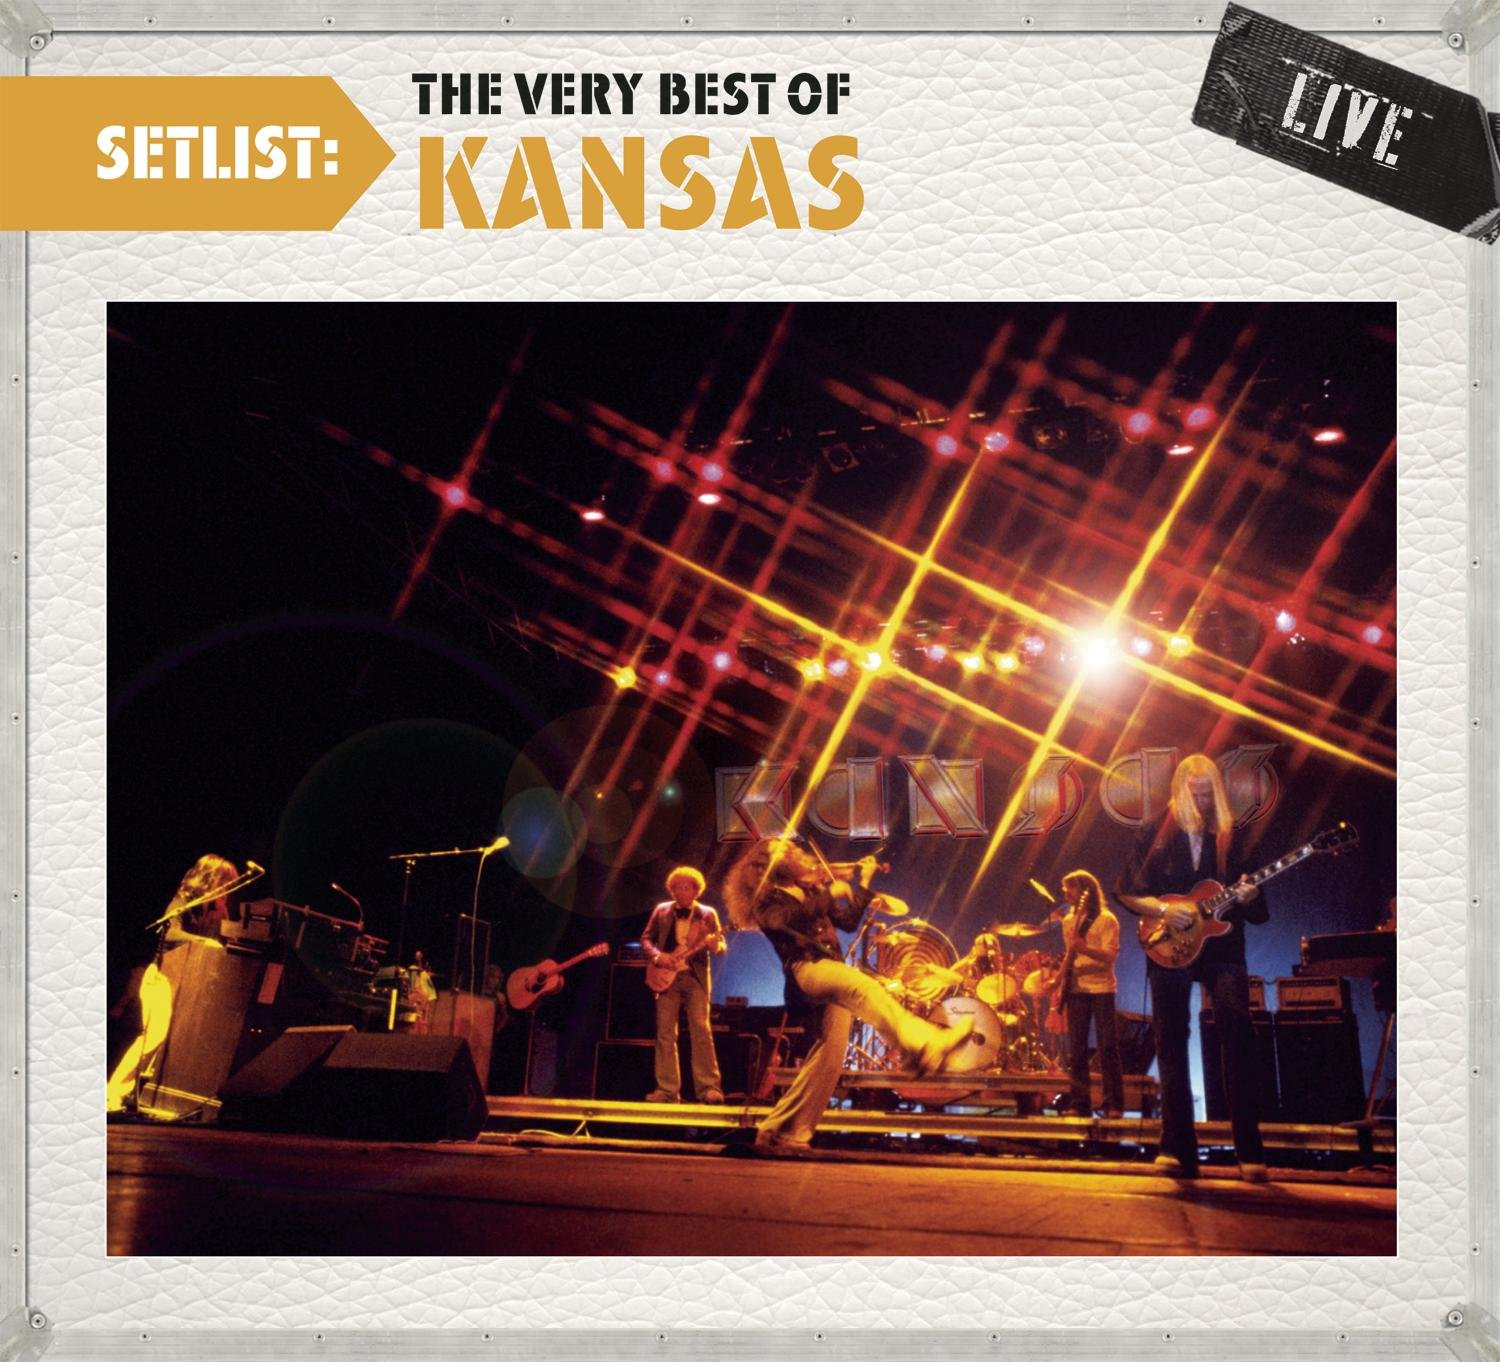 Setlist: The Very Best Of Kansas LIVE by CD